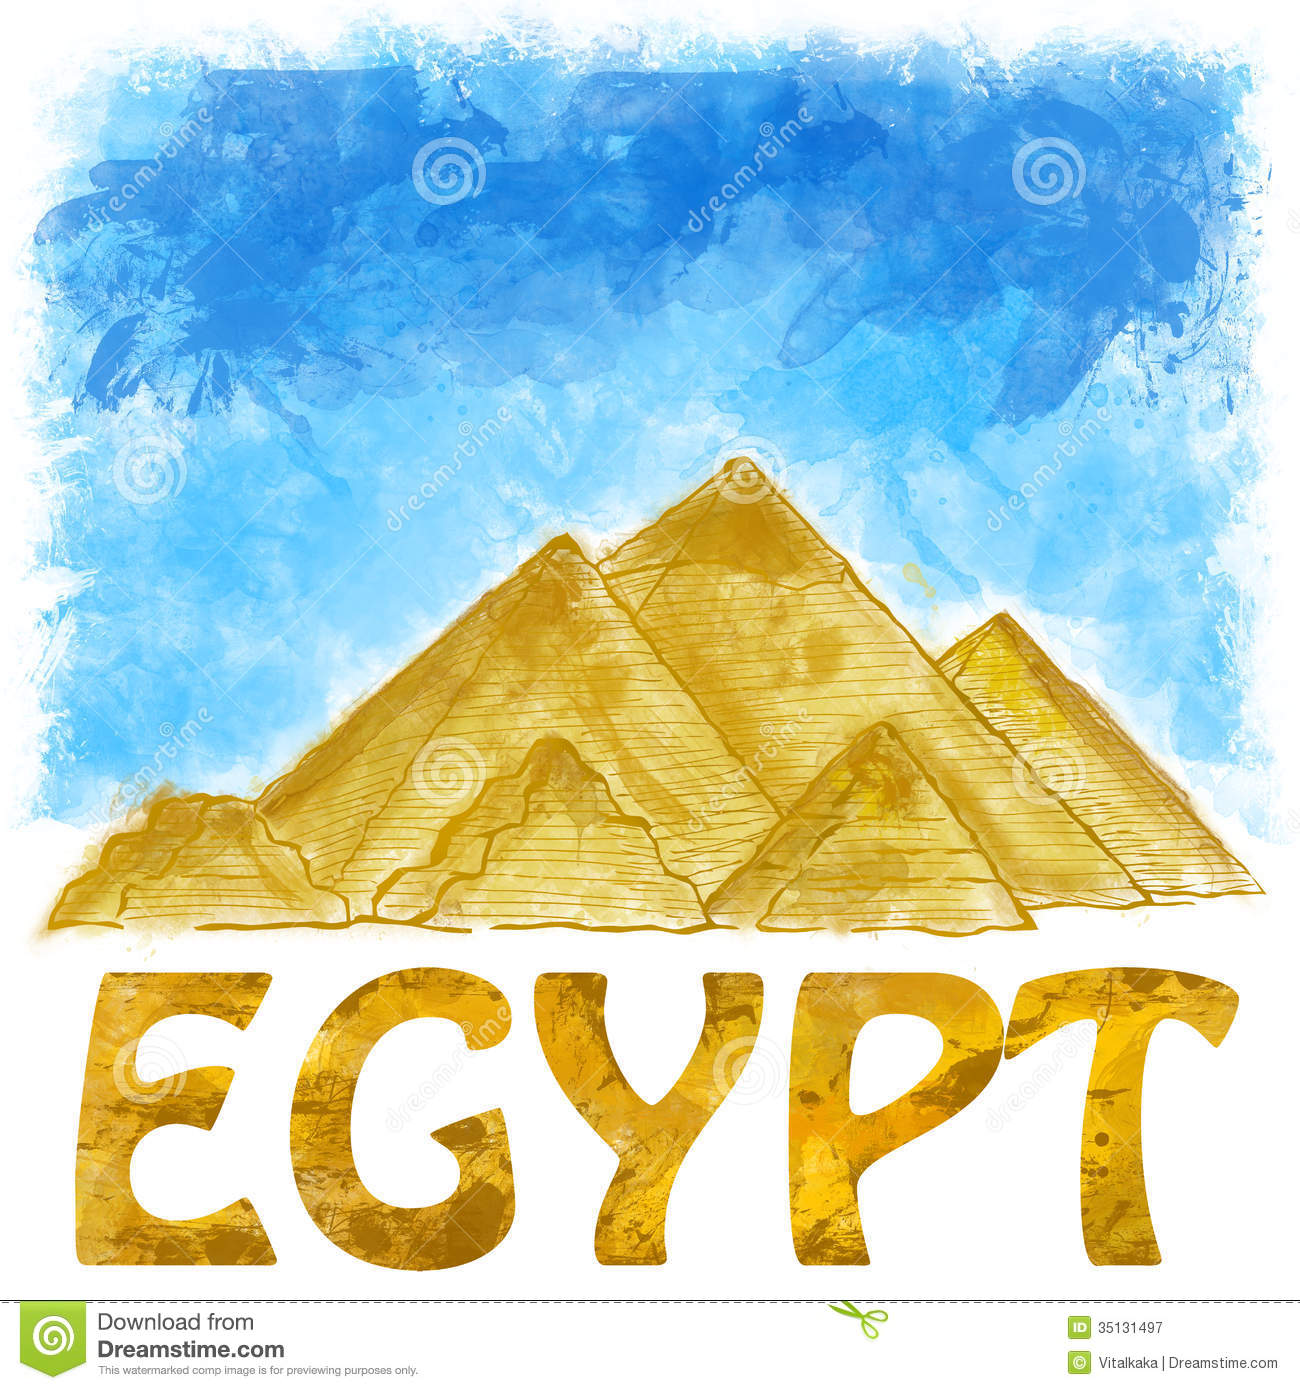 Egyptian pyramids stock illustration. Illustration of desert.